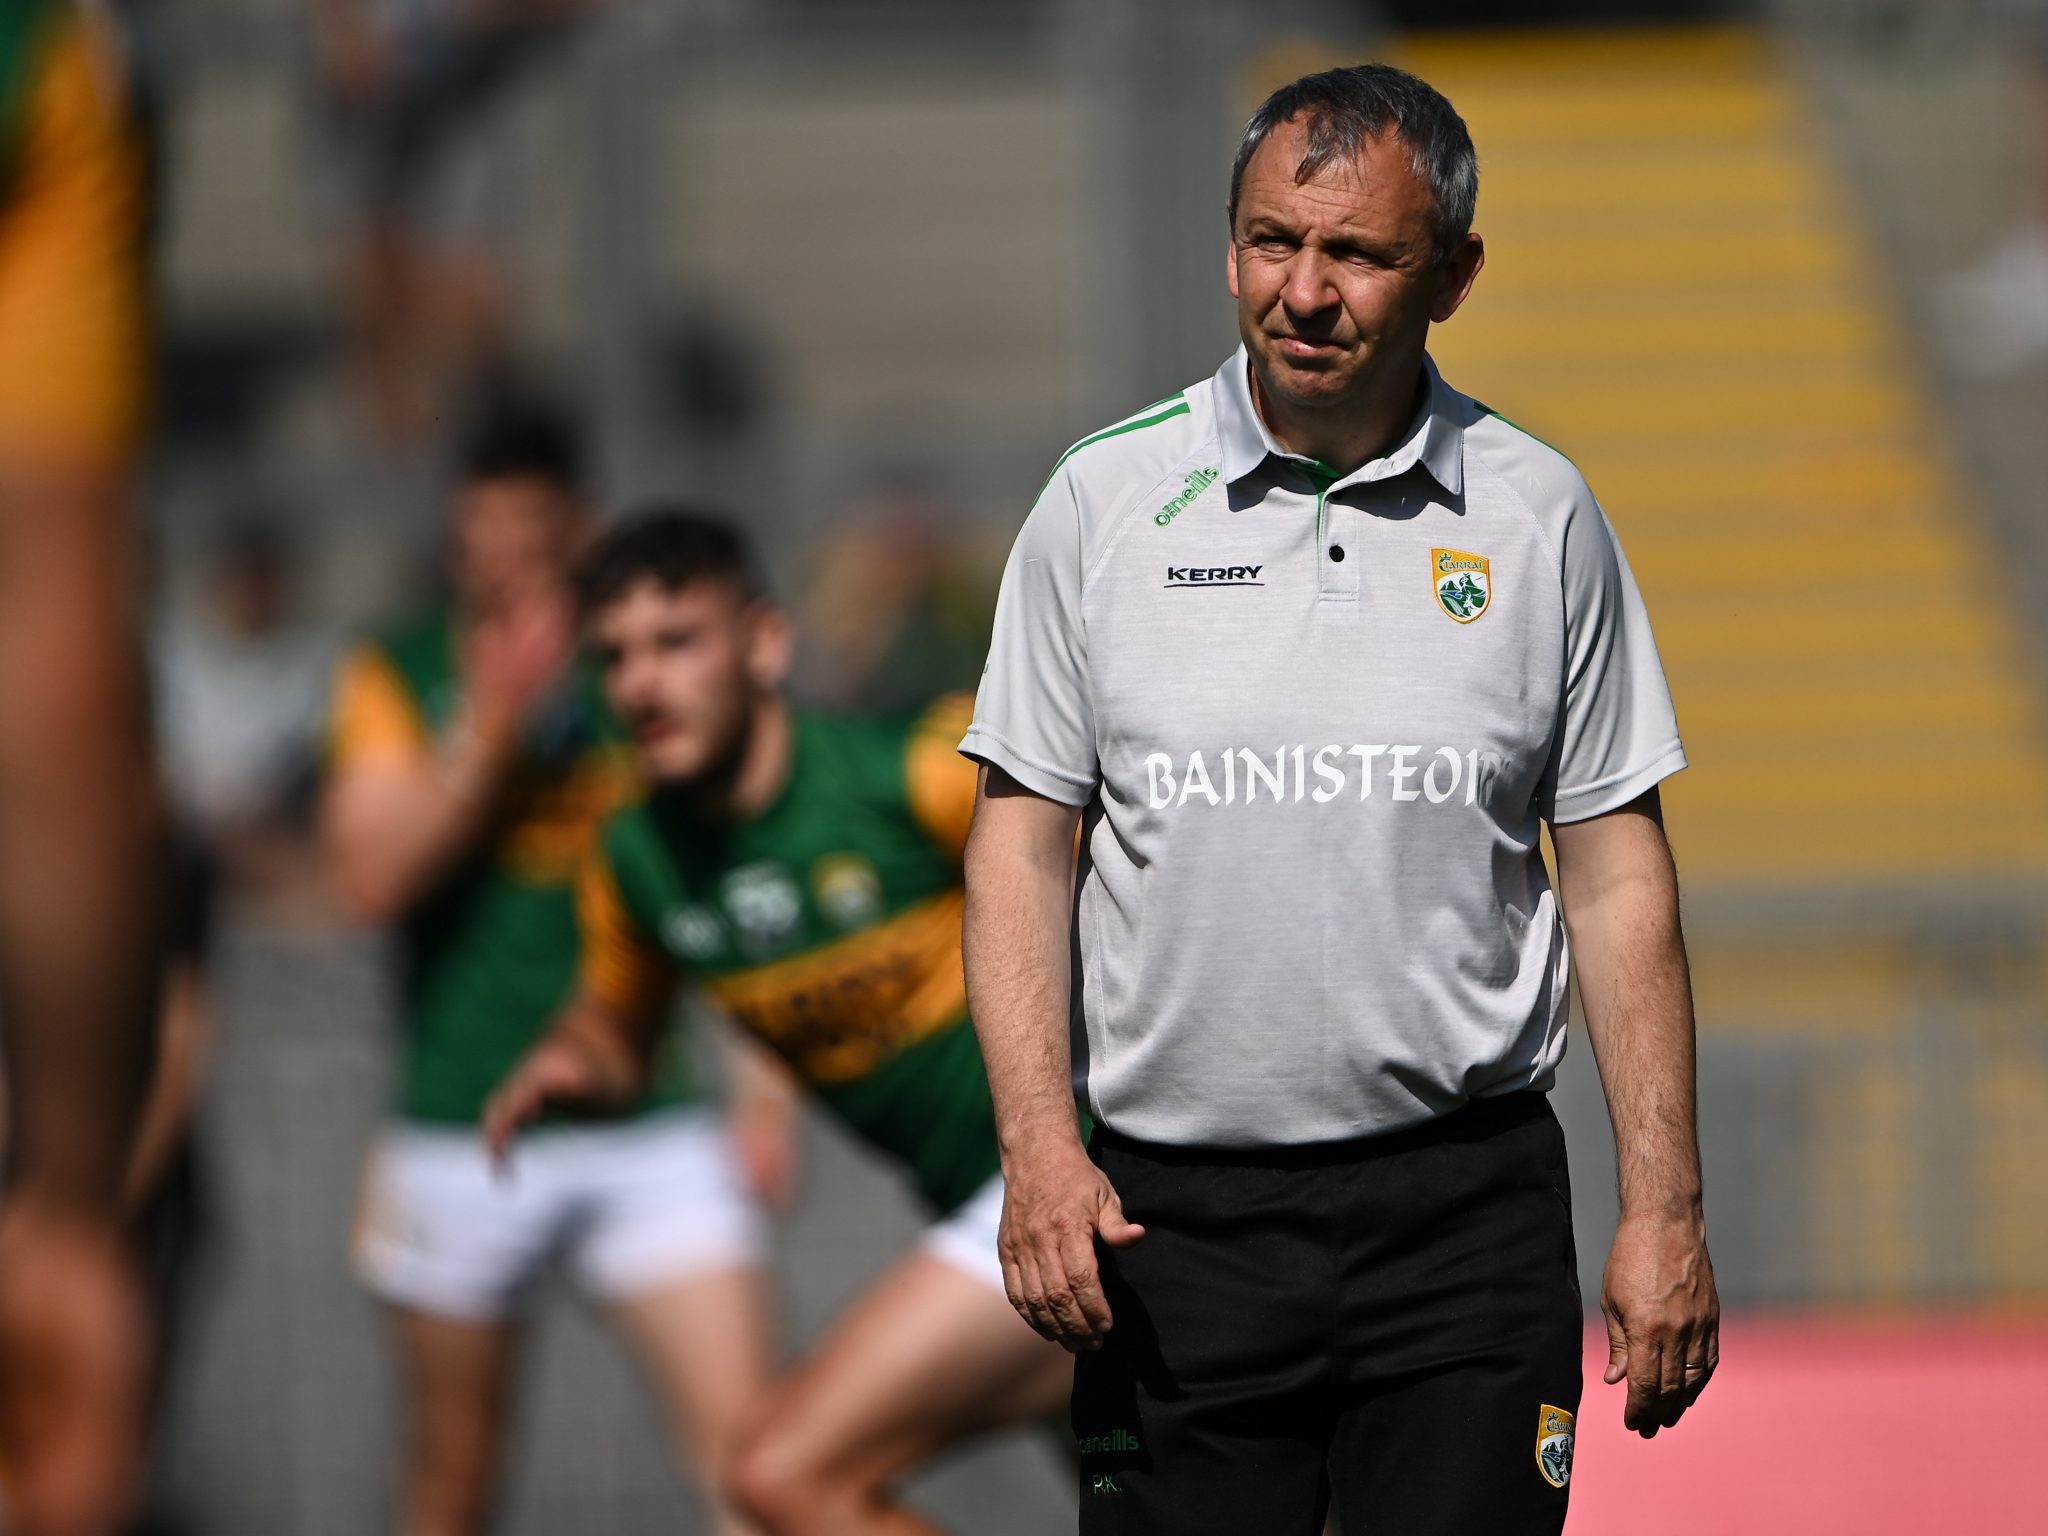 Kerry manager